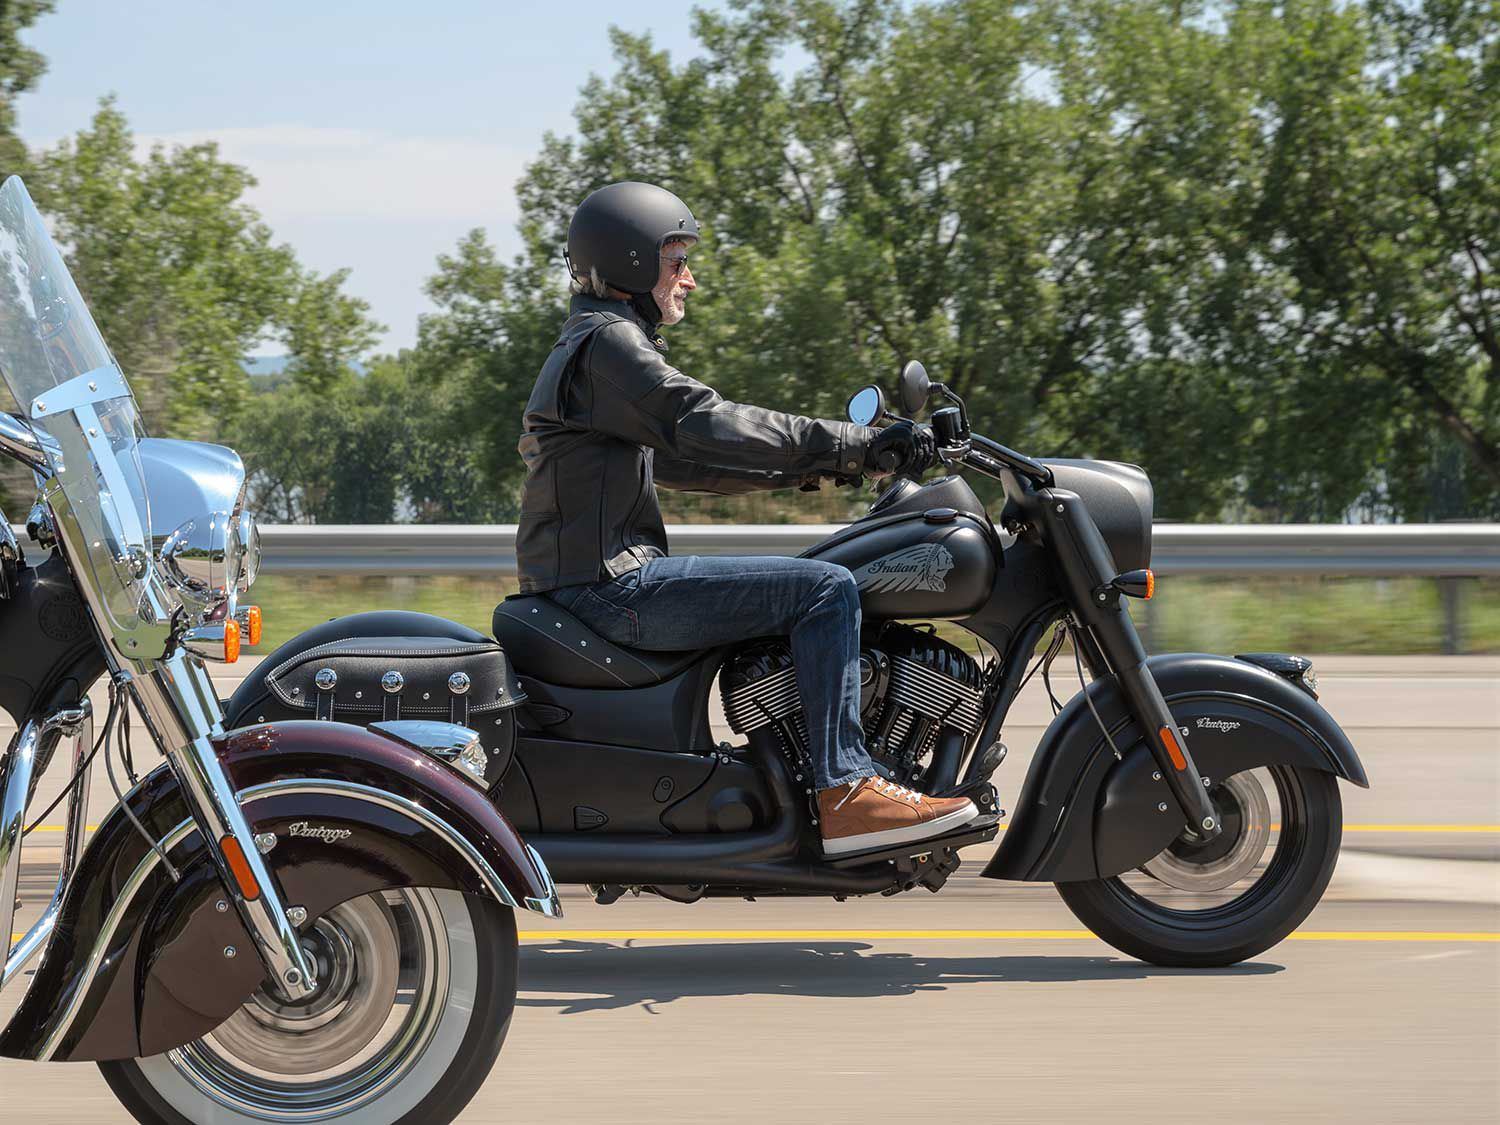 Indian has announced its models for 2021, with the new Vintage Dark Horse leading the charge. The regular Vintage model is to the left.